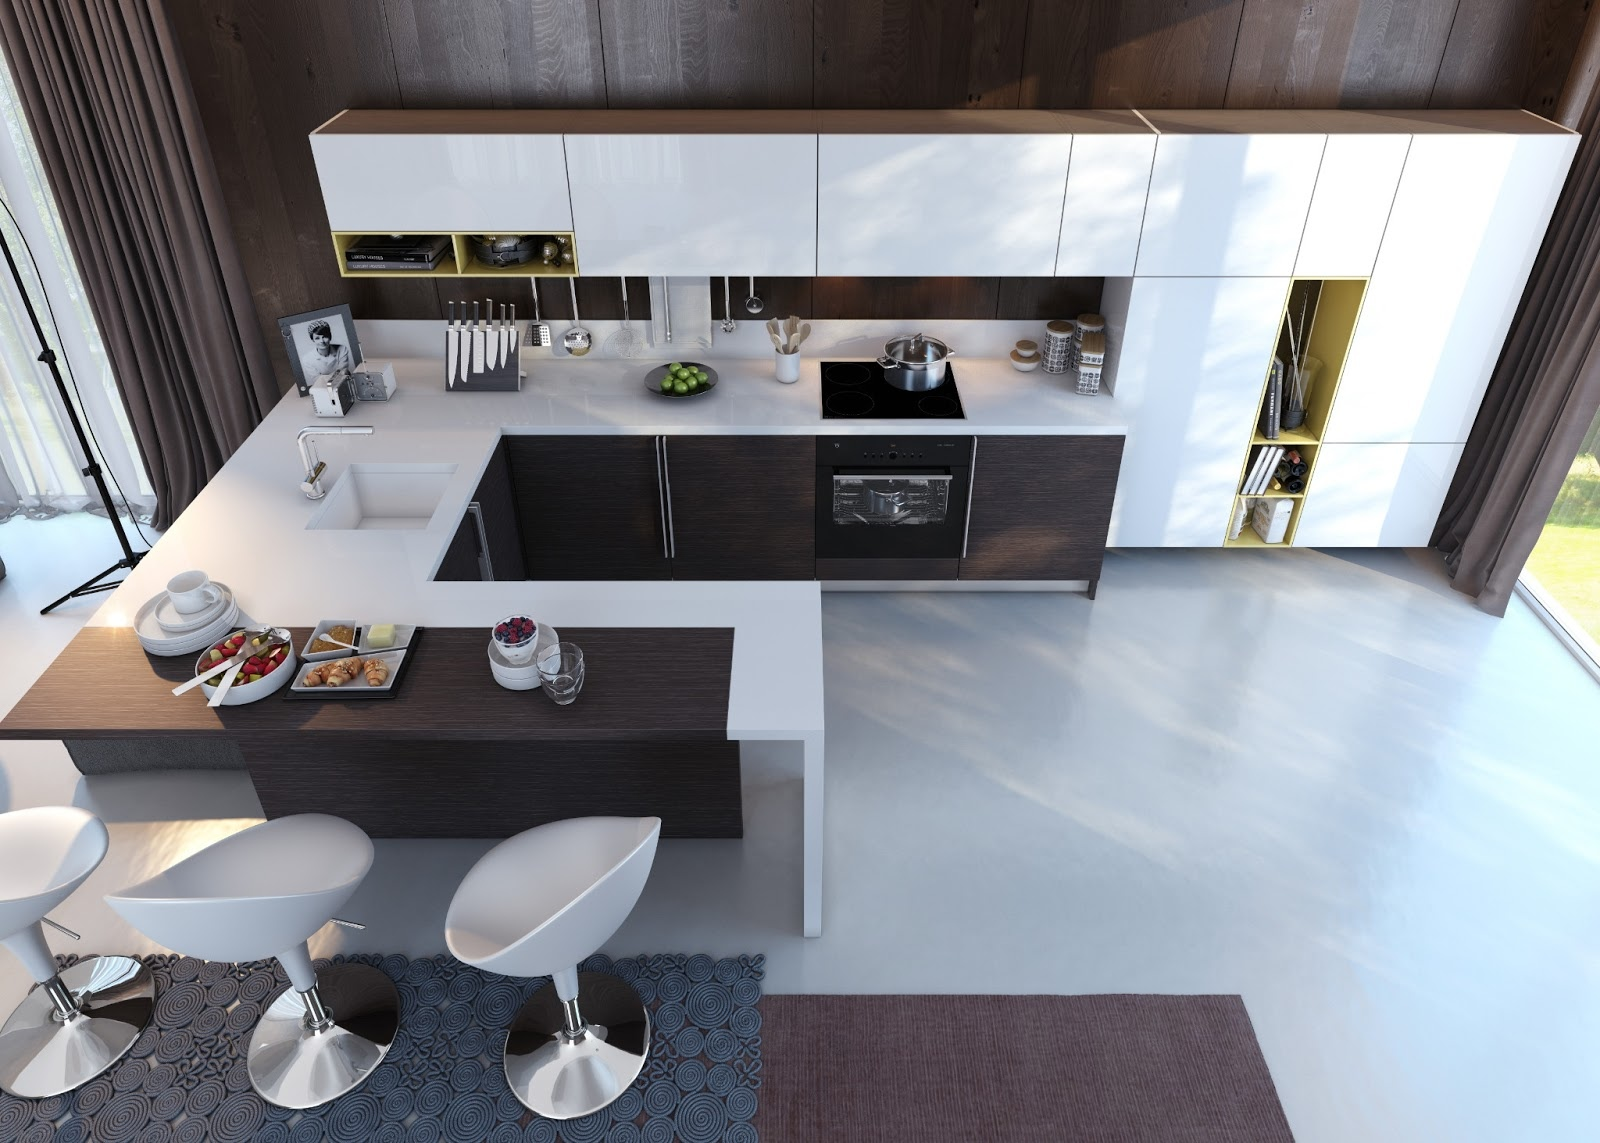 Kitchens with Contrast #786444 1600 1143